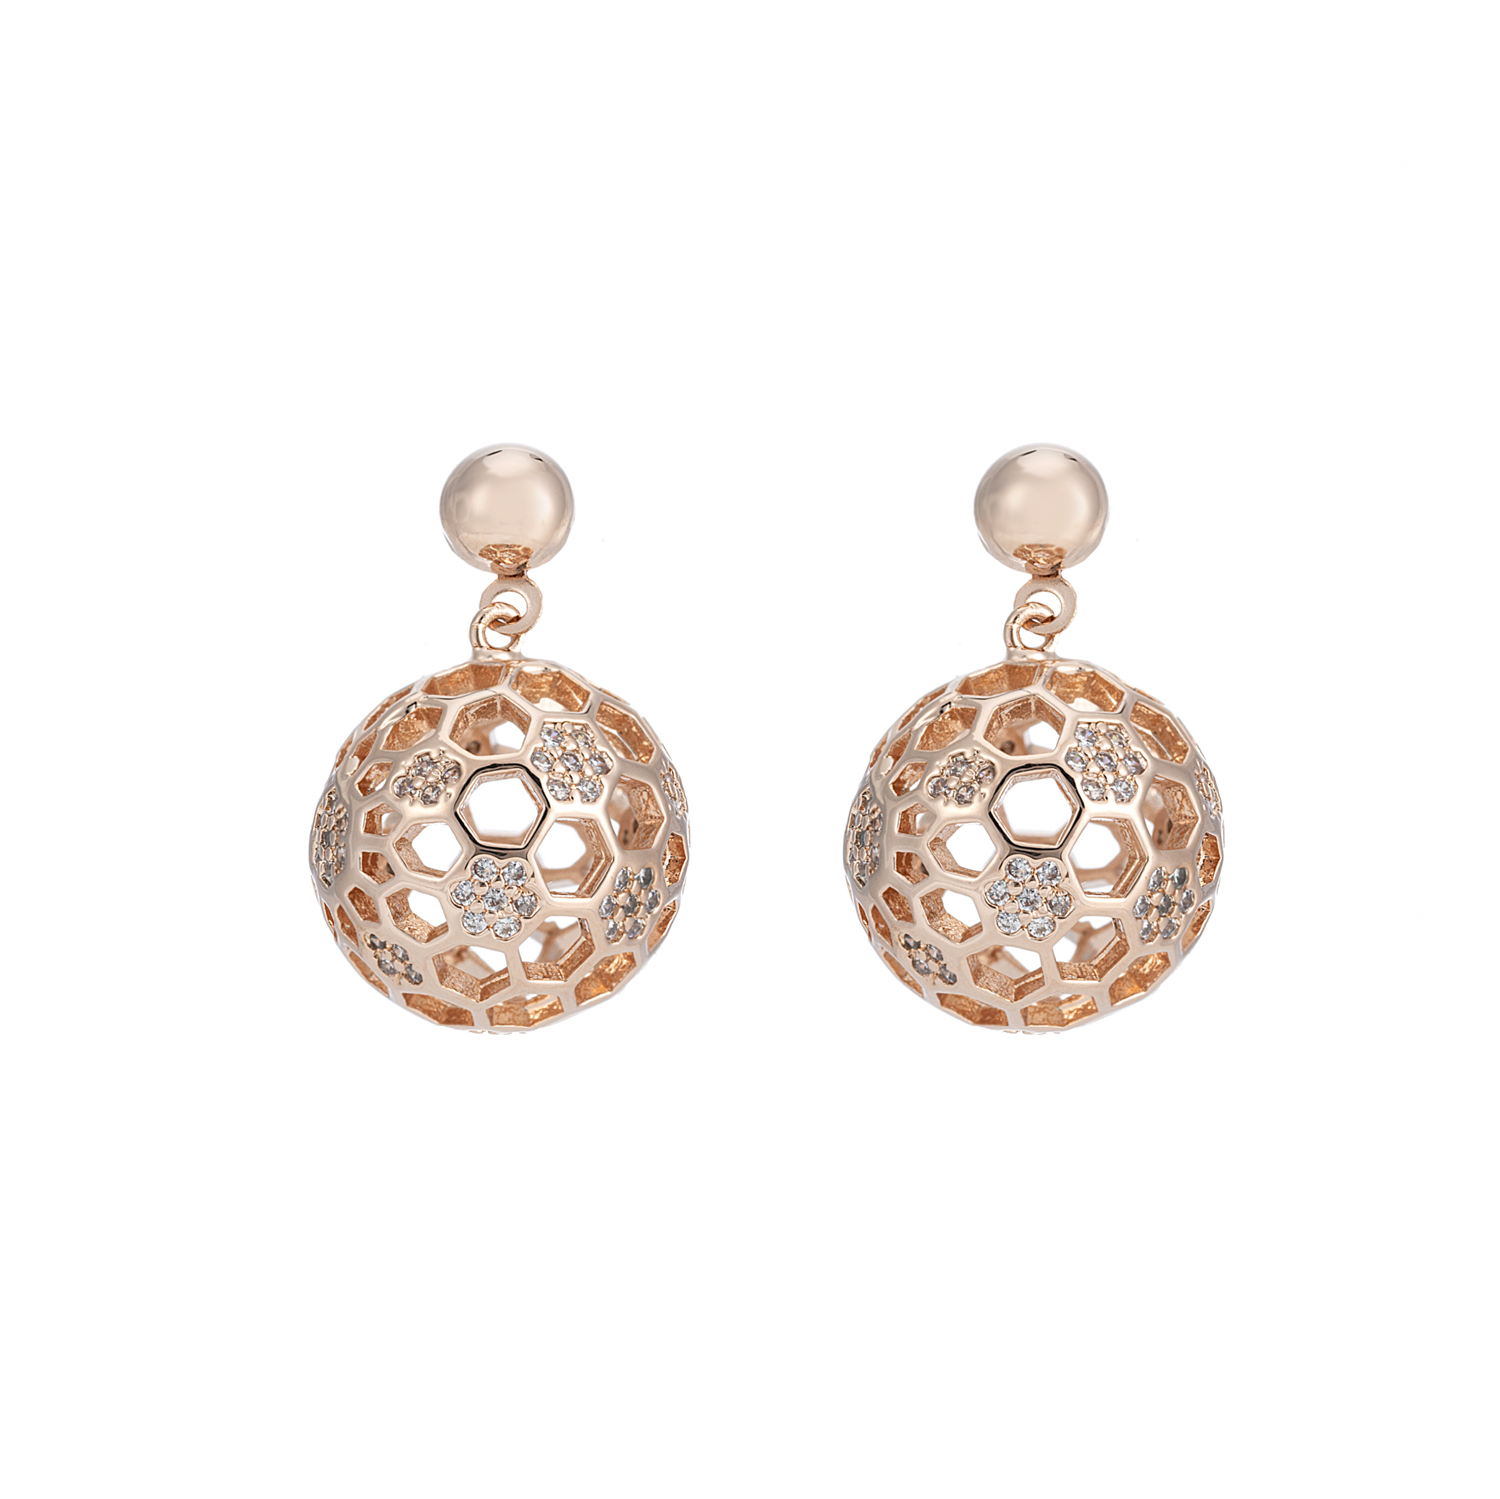 ROSE GOLD Cameo Honeycomb Crystal Earrings